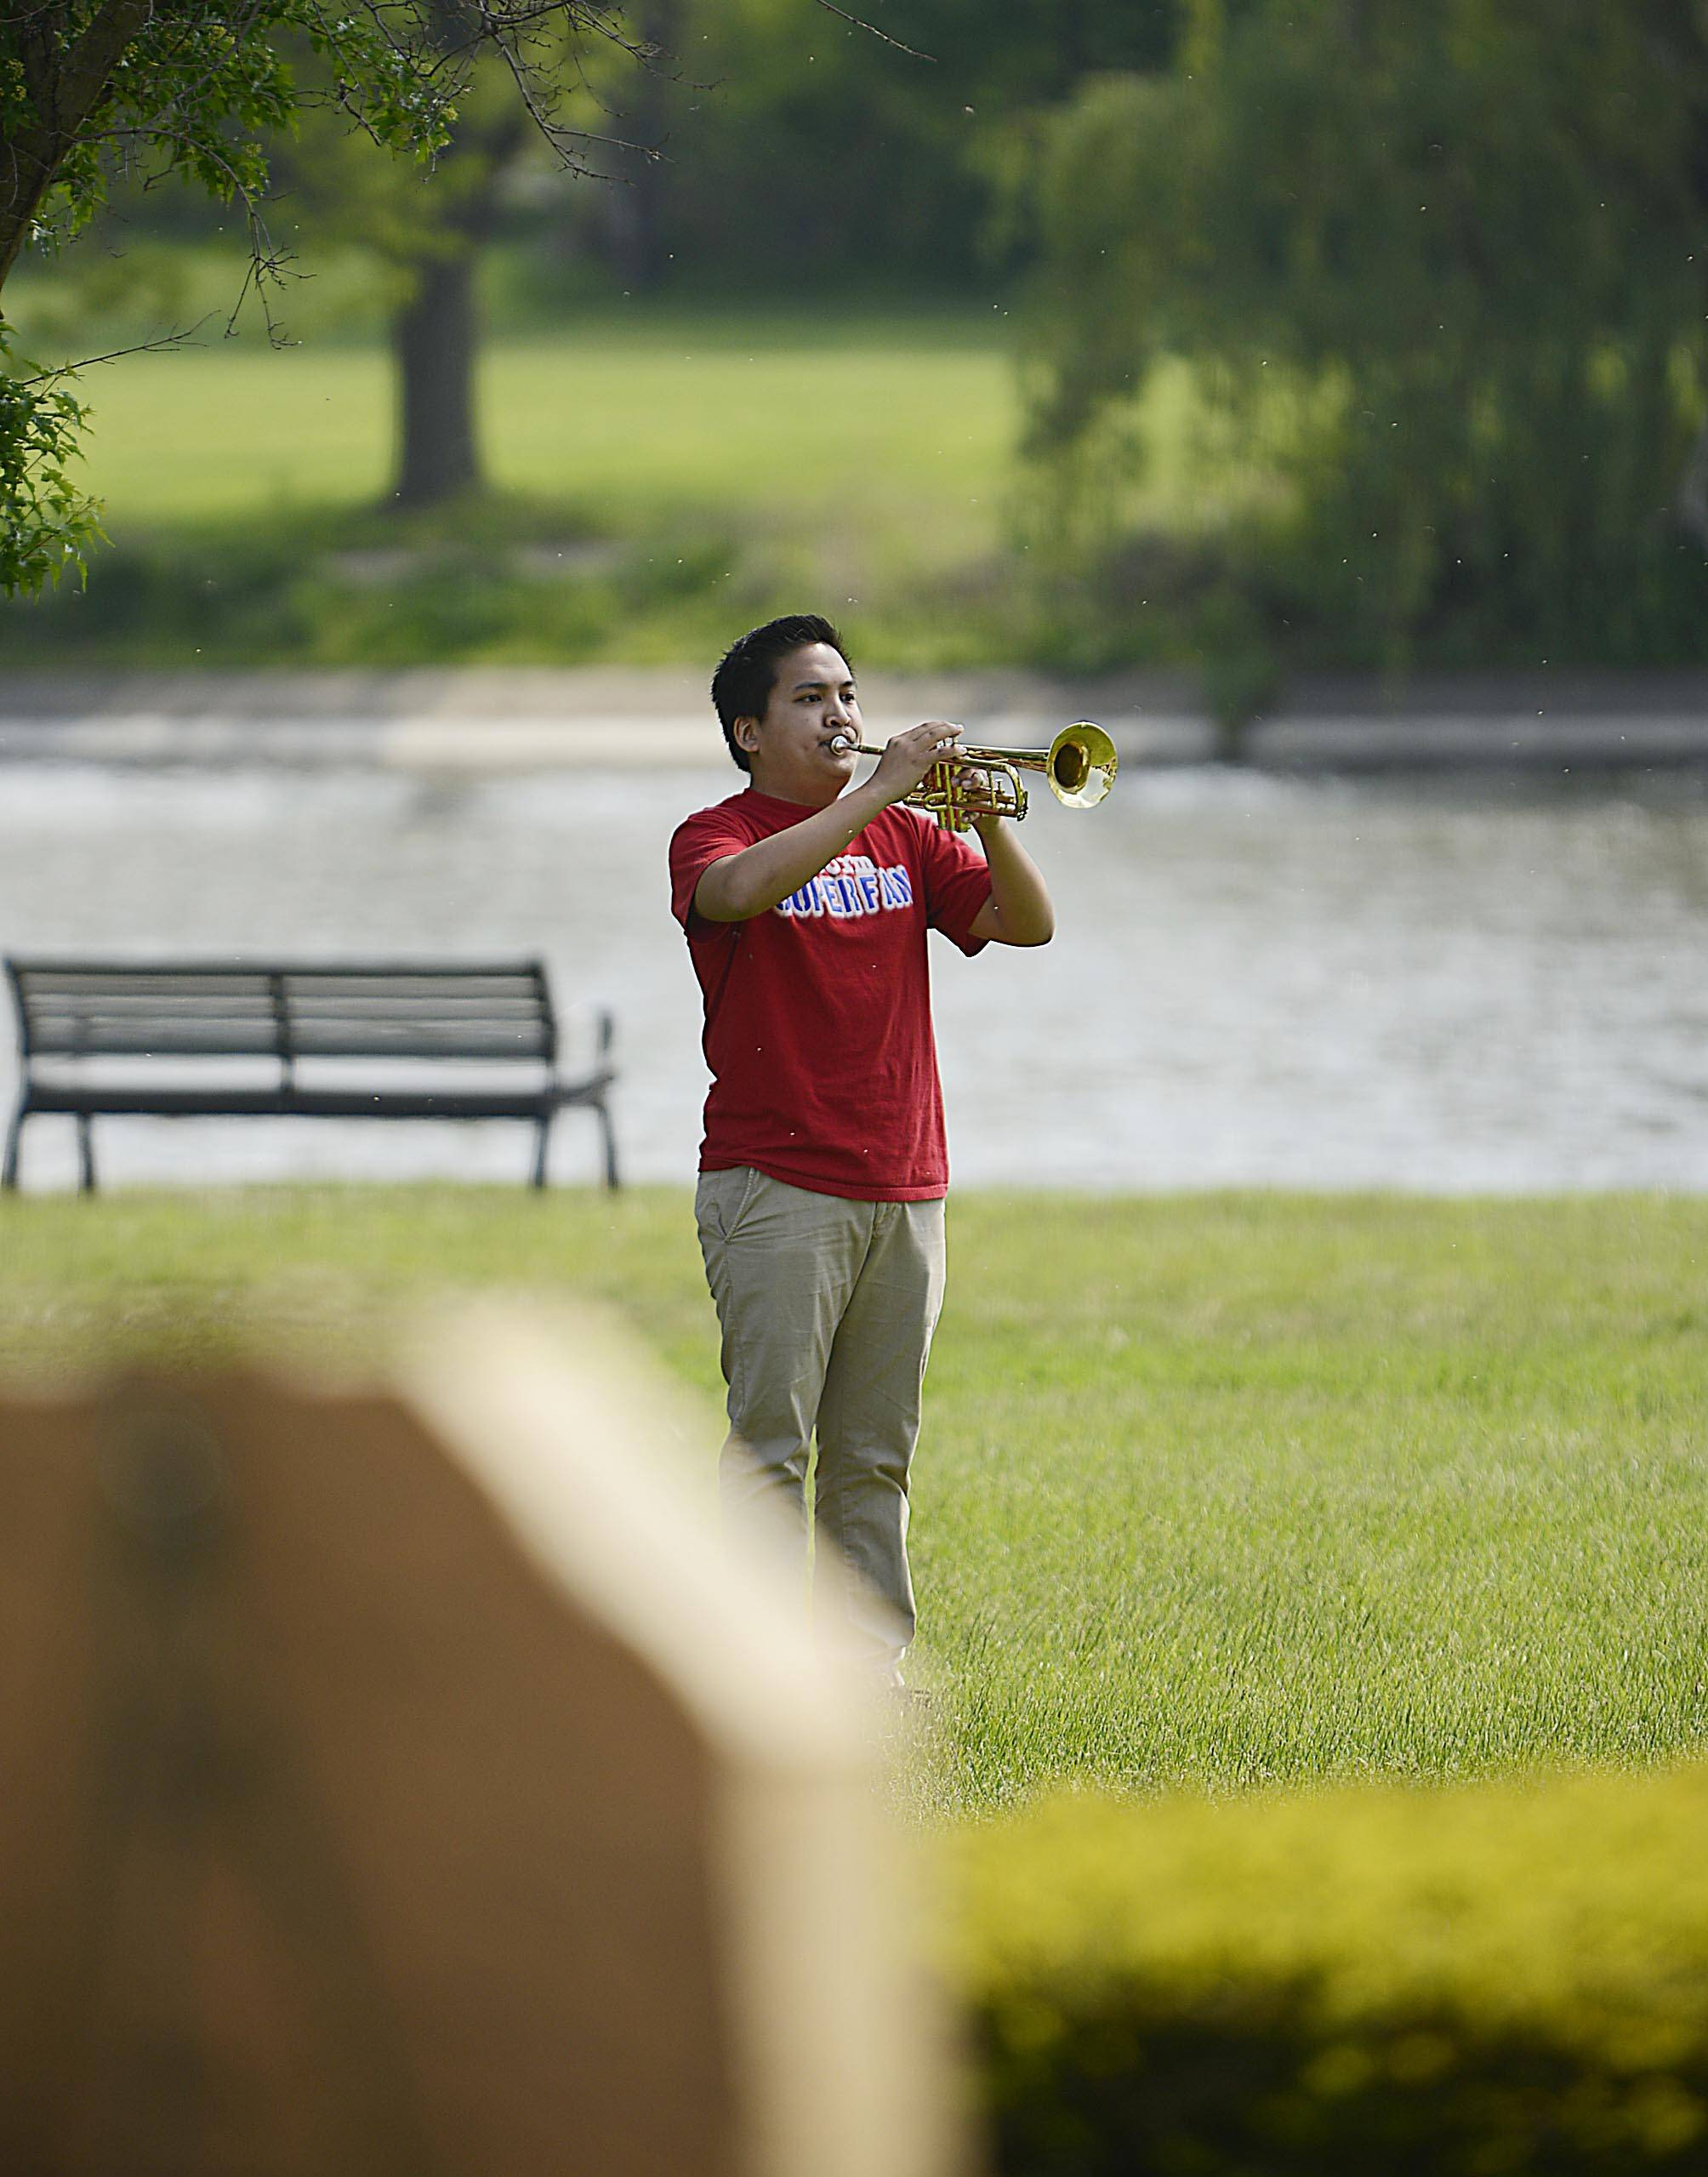 Ian Dela Merced, a senior at South Elgin High School, plays Taps to close the South Elgin Memorial Day event at Panton Mill Park.